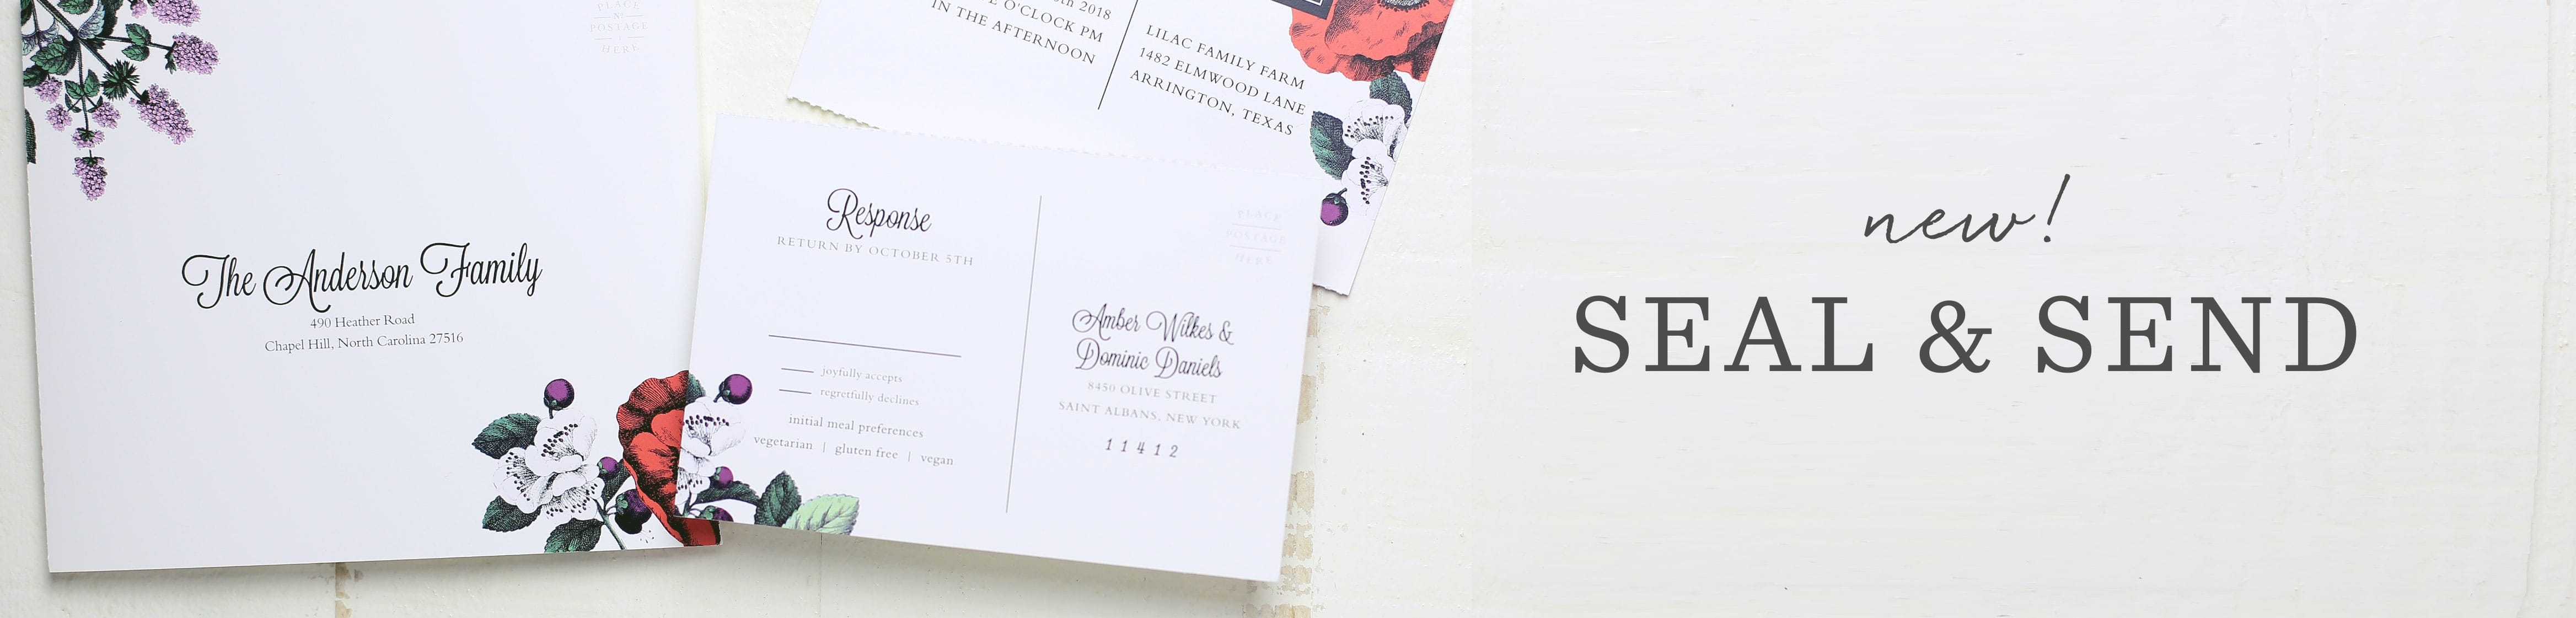 Wedding Invitations With RSVP Cards - Match Your Color & Style Free!